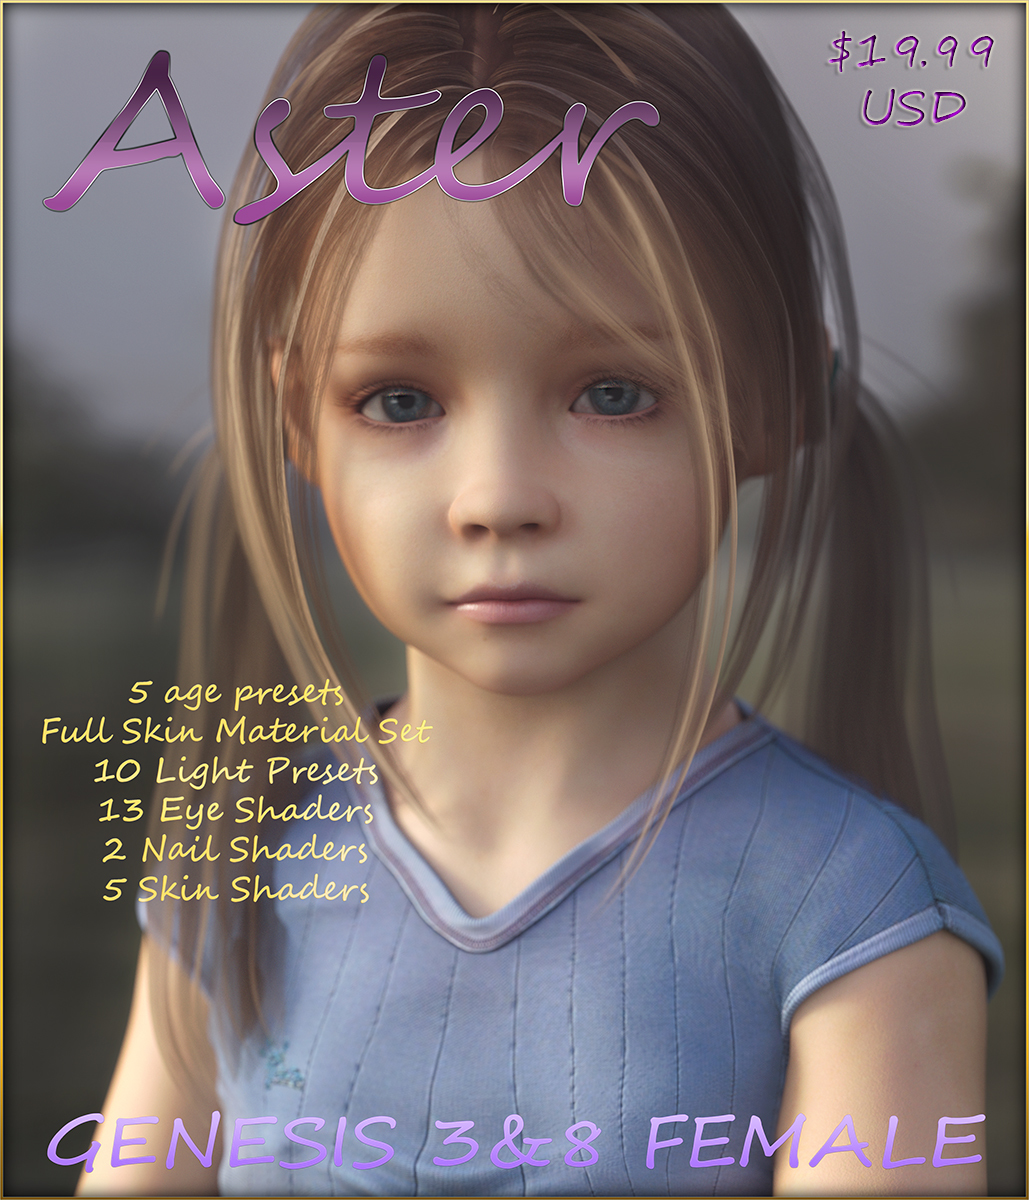 Aster for Genesis 3 and 8 Female